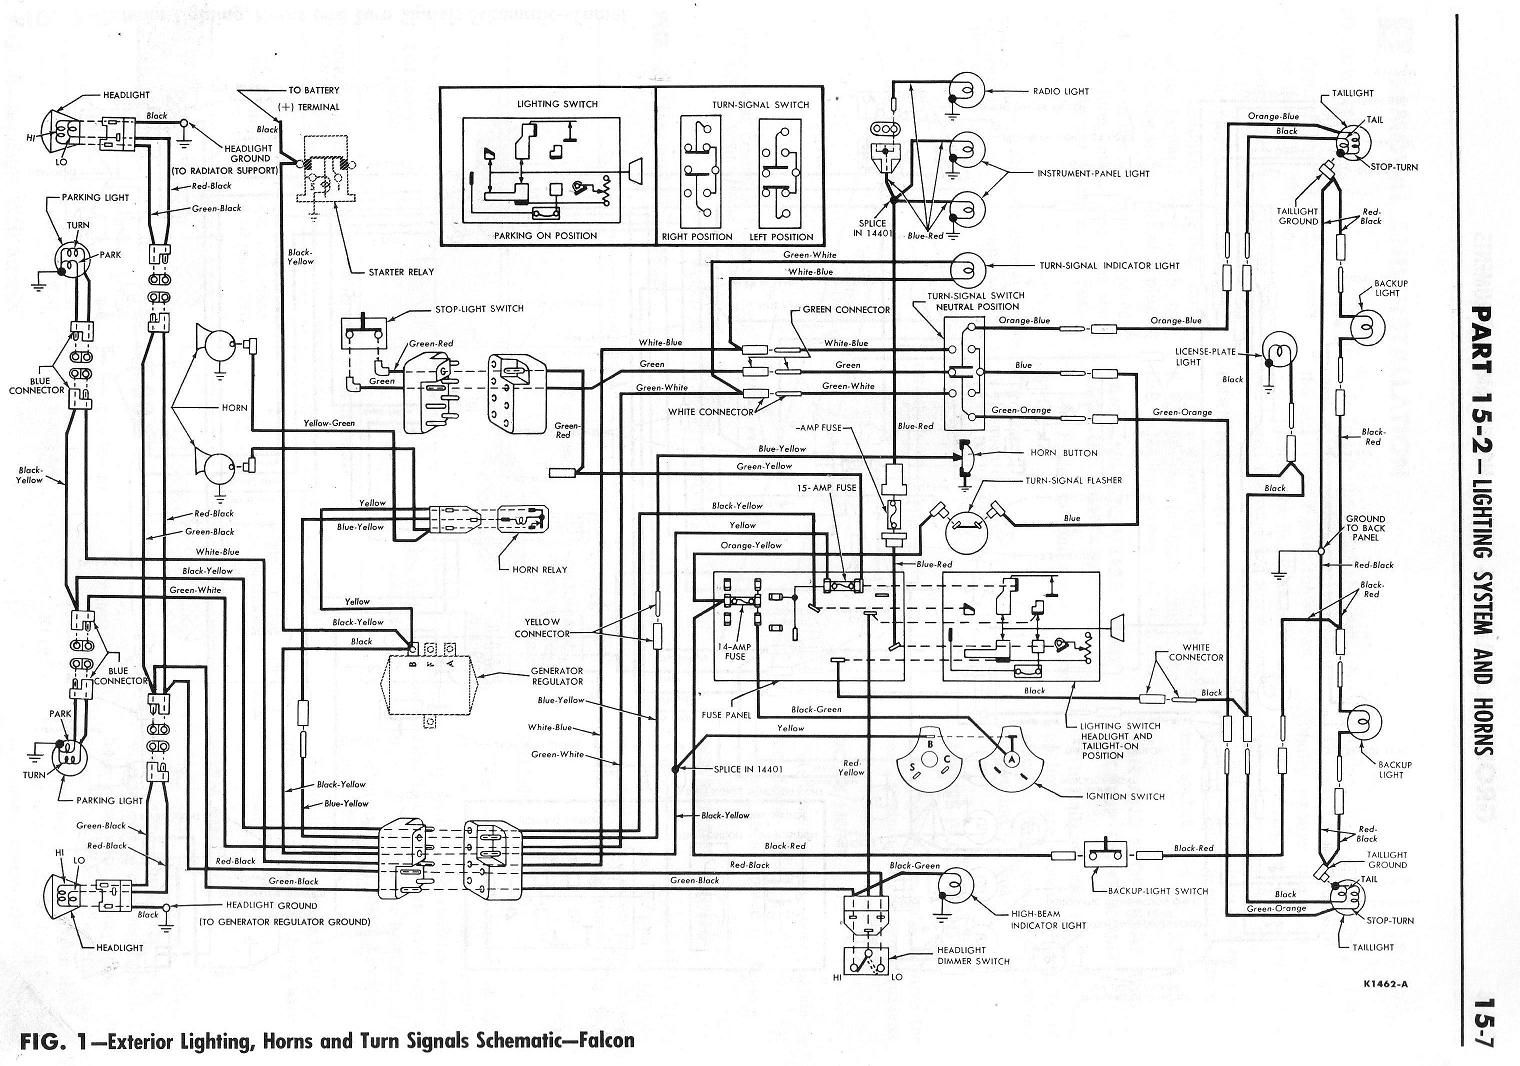 Nice Ford Wiring Diagram 1964 Ranchero Wiring Diagrams1964 Ford Wiring 3  ford wiring diagram|bookingritzcarlton.… | Electrical wiring diagram,  Diagram, Wall ac unitPinterest